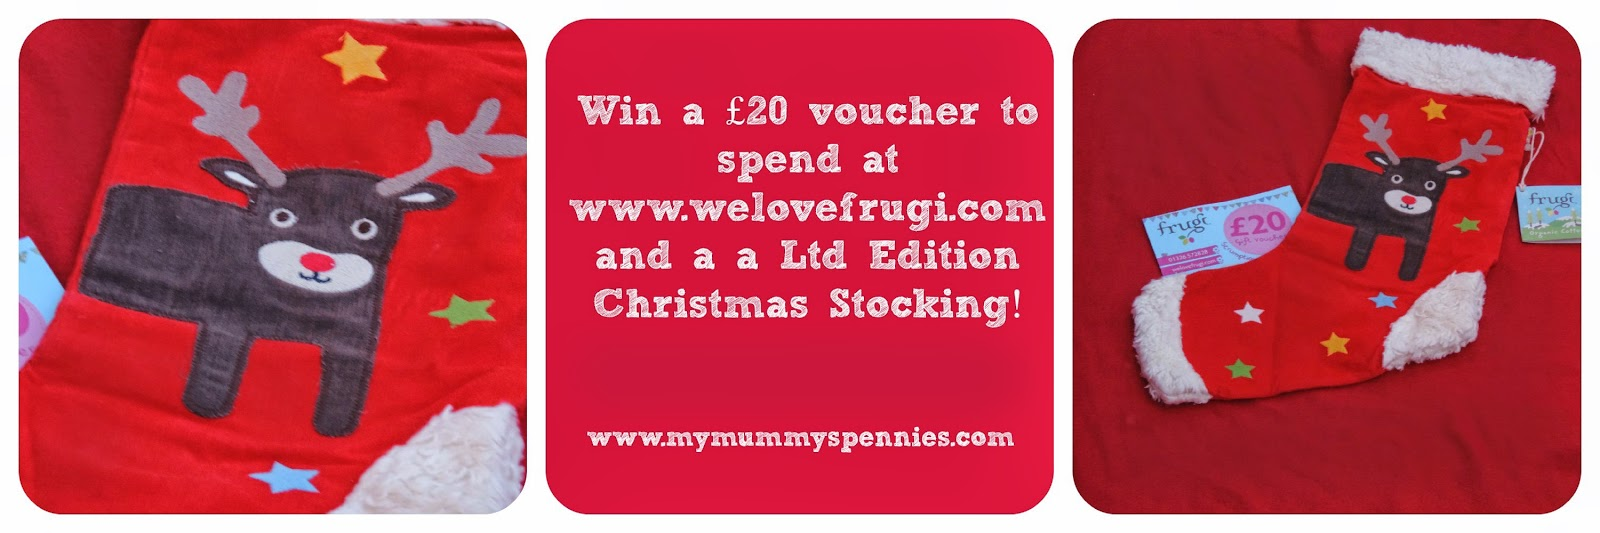 Win a £20 frugi voucher with www.mymummyspennies.com